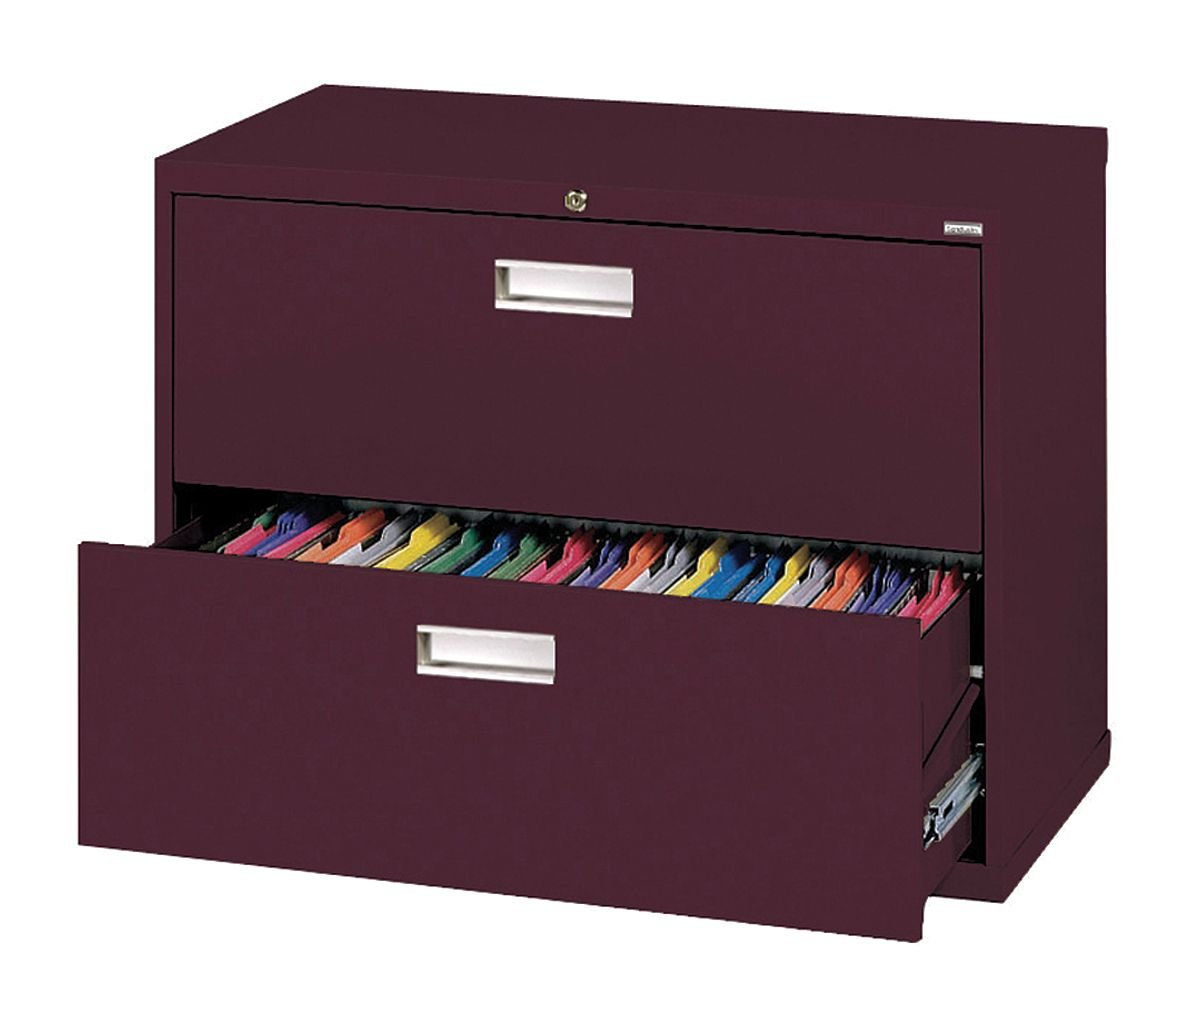 Sandusky Lee LF6A362-03 600 Series 2 Drawer Lateral File Cabinet, 19.25 Depth x 28.375 Height x 36 Width, Burgundy